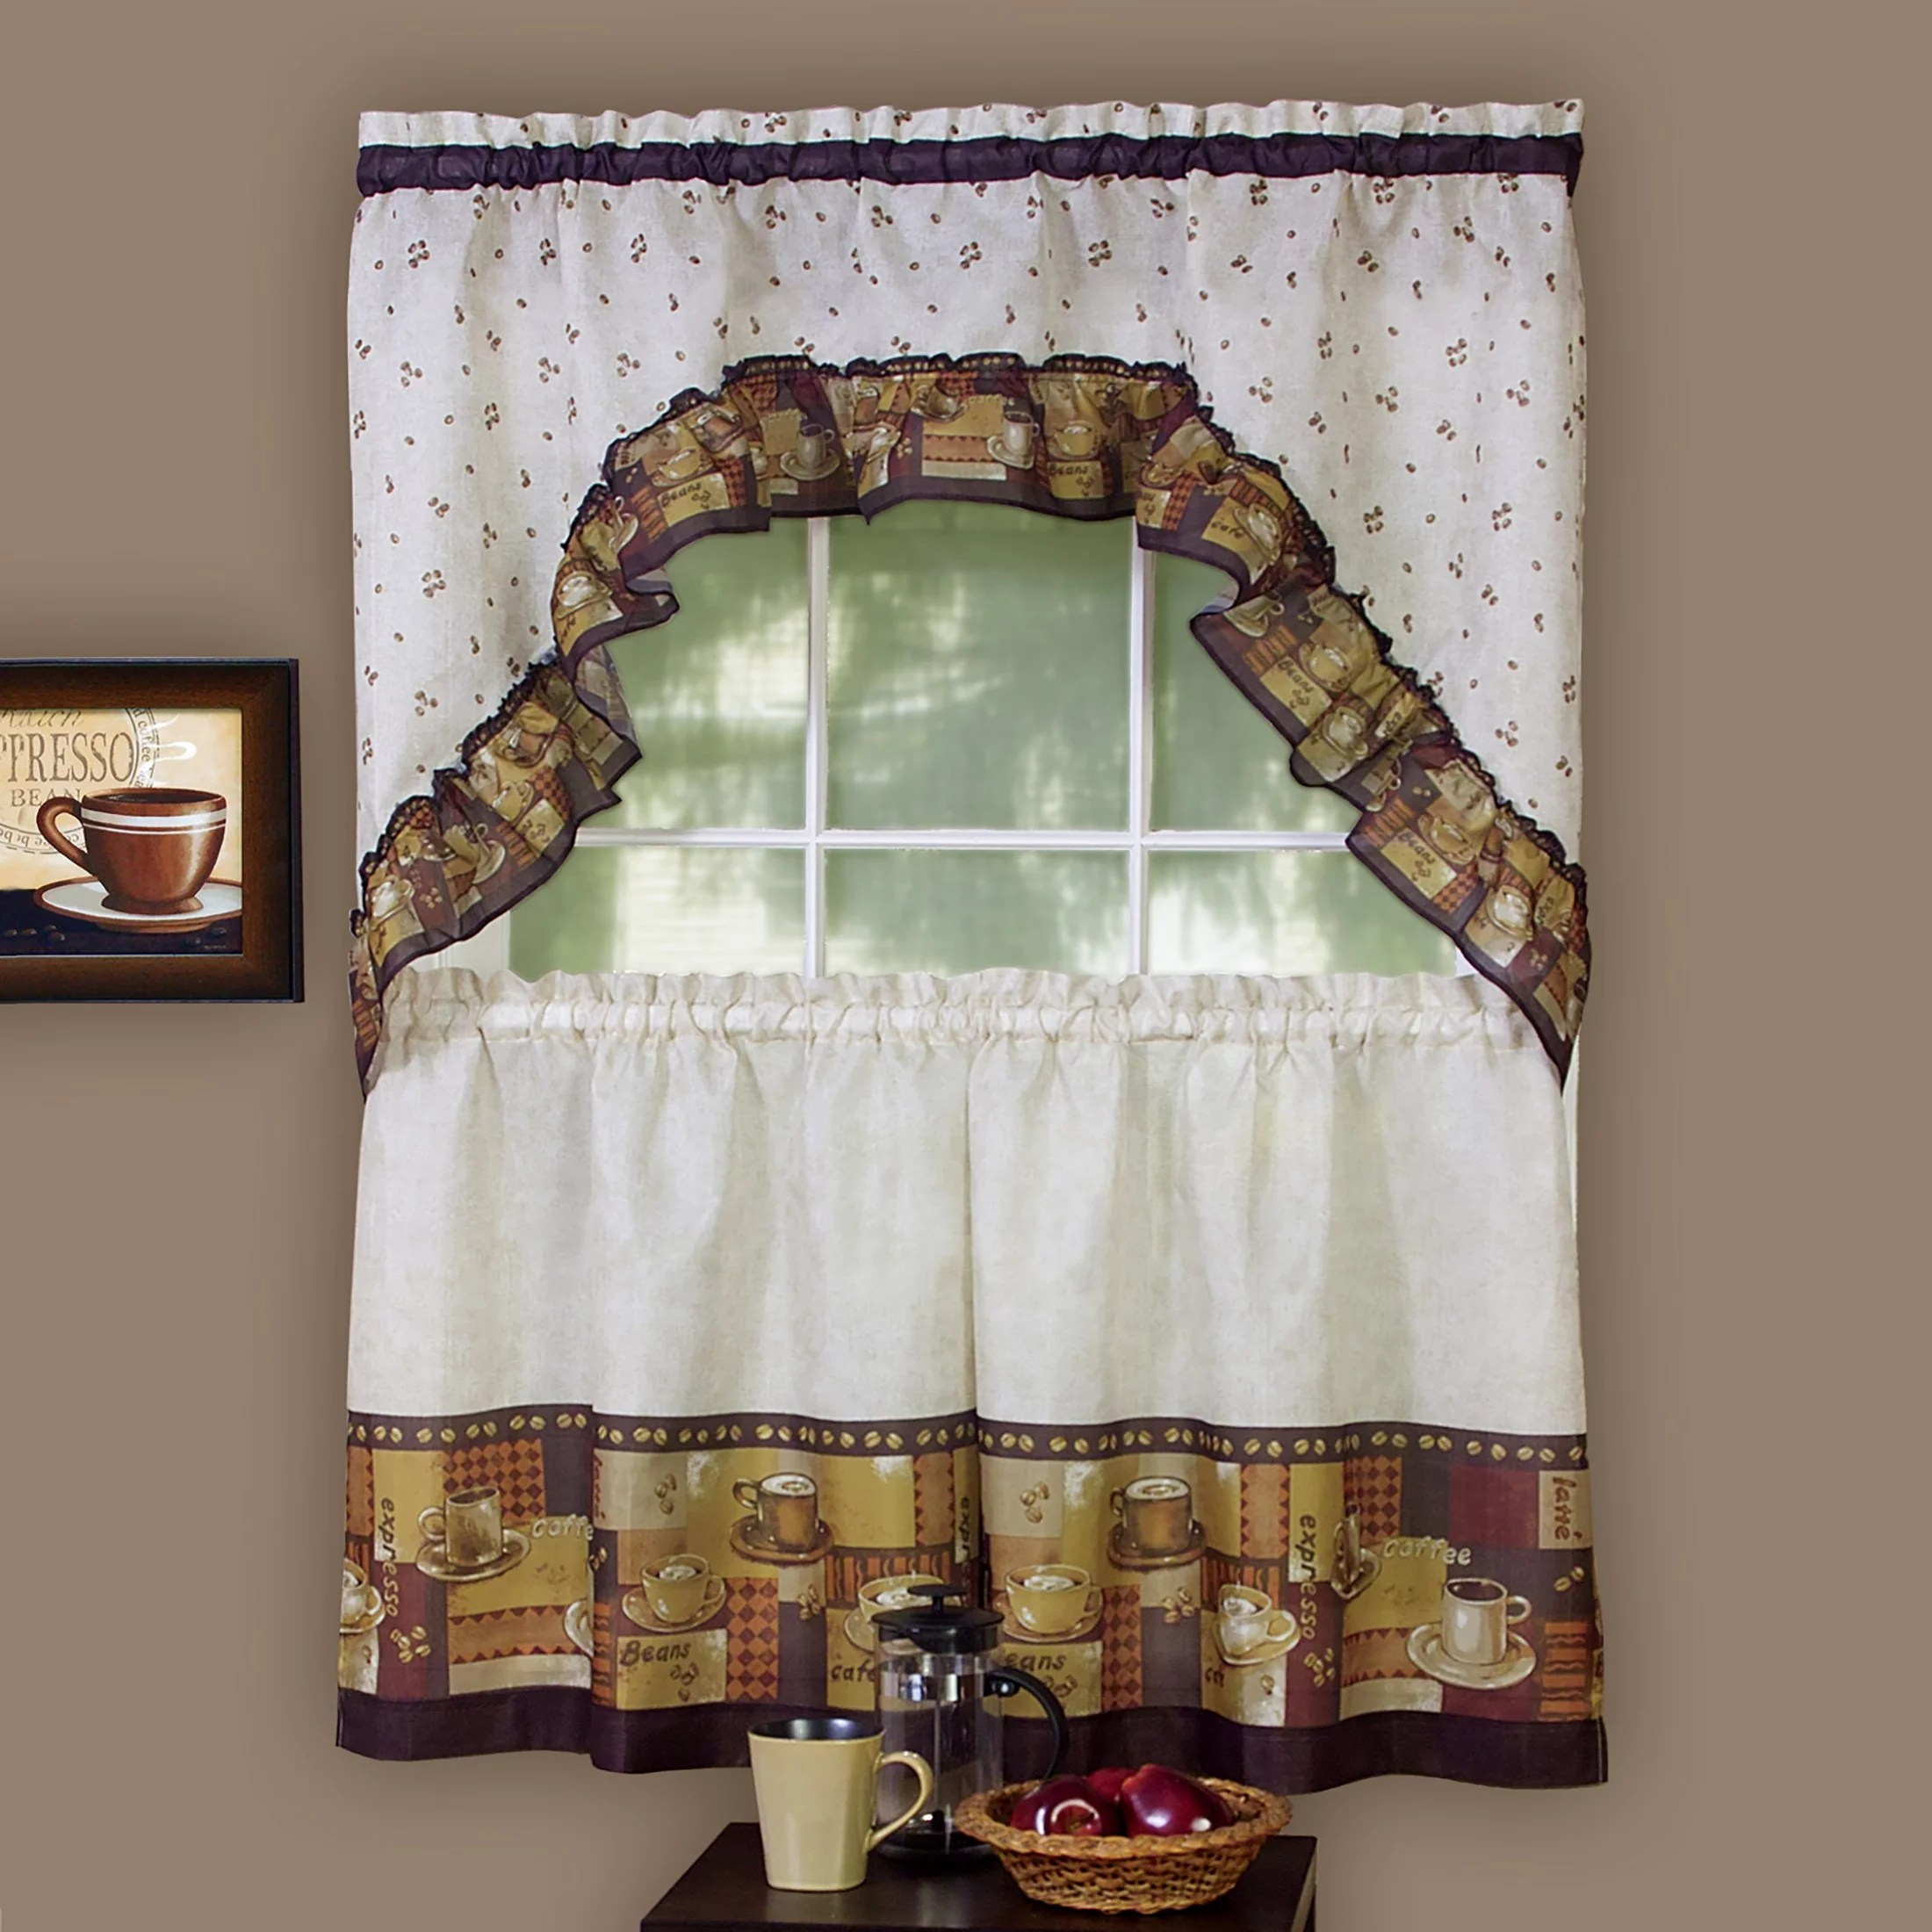 woven trends 3 piece kitchen curtain set coffee lovers kitchen decor cafe curtain with swag and tier panel set perfect window treatment for living